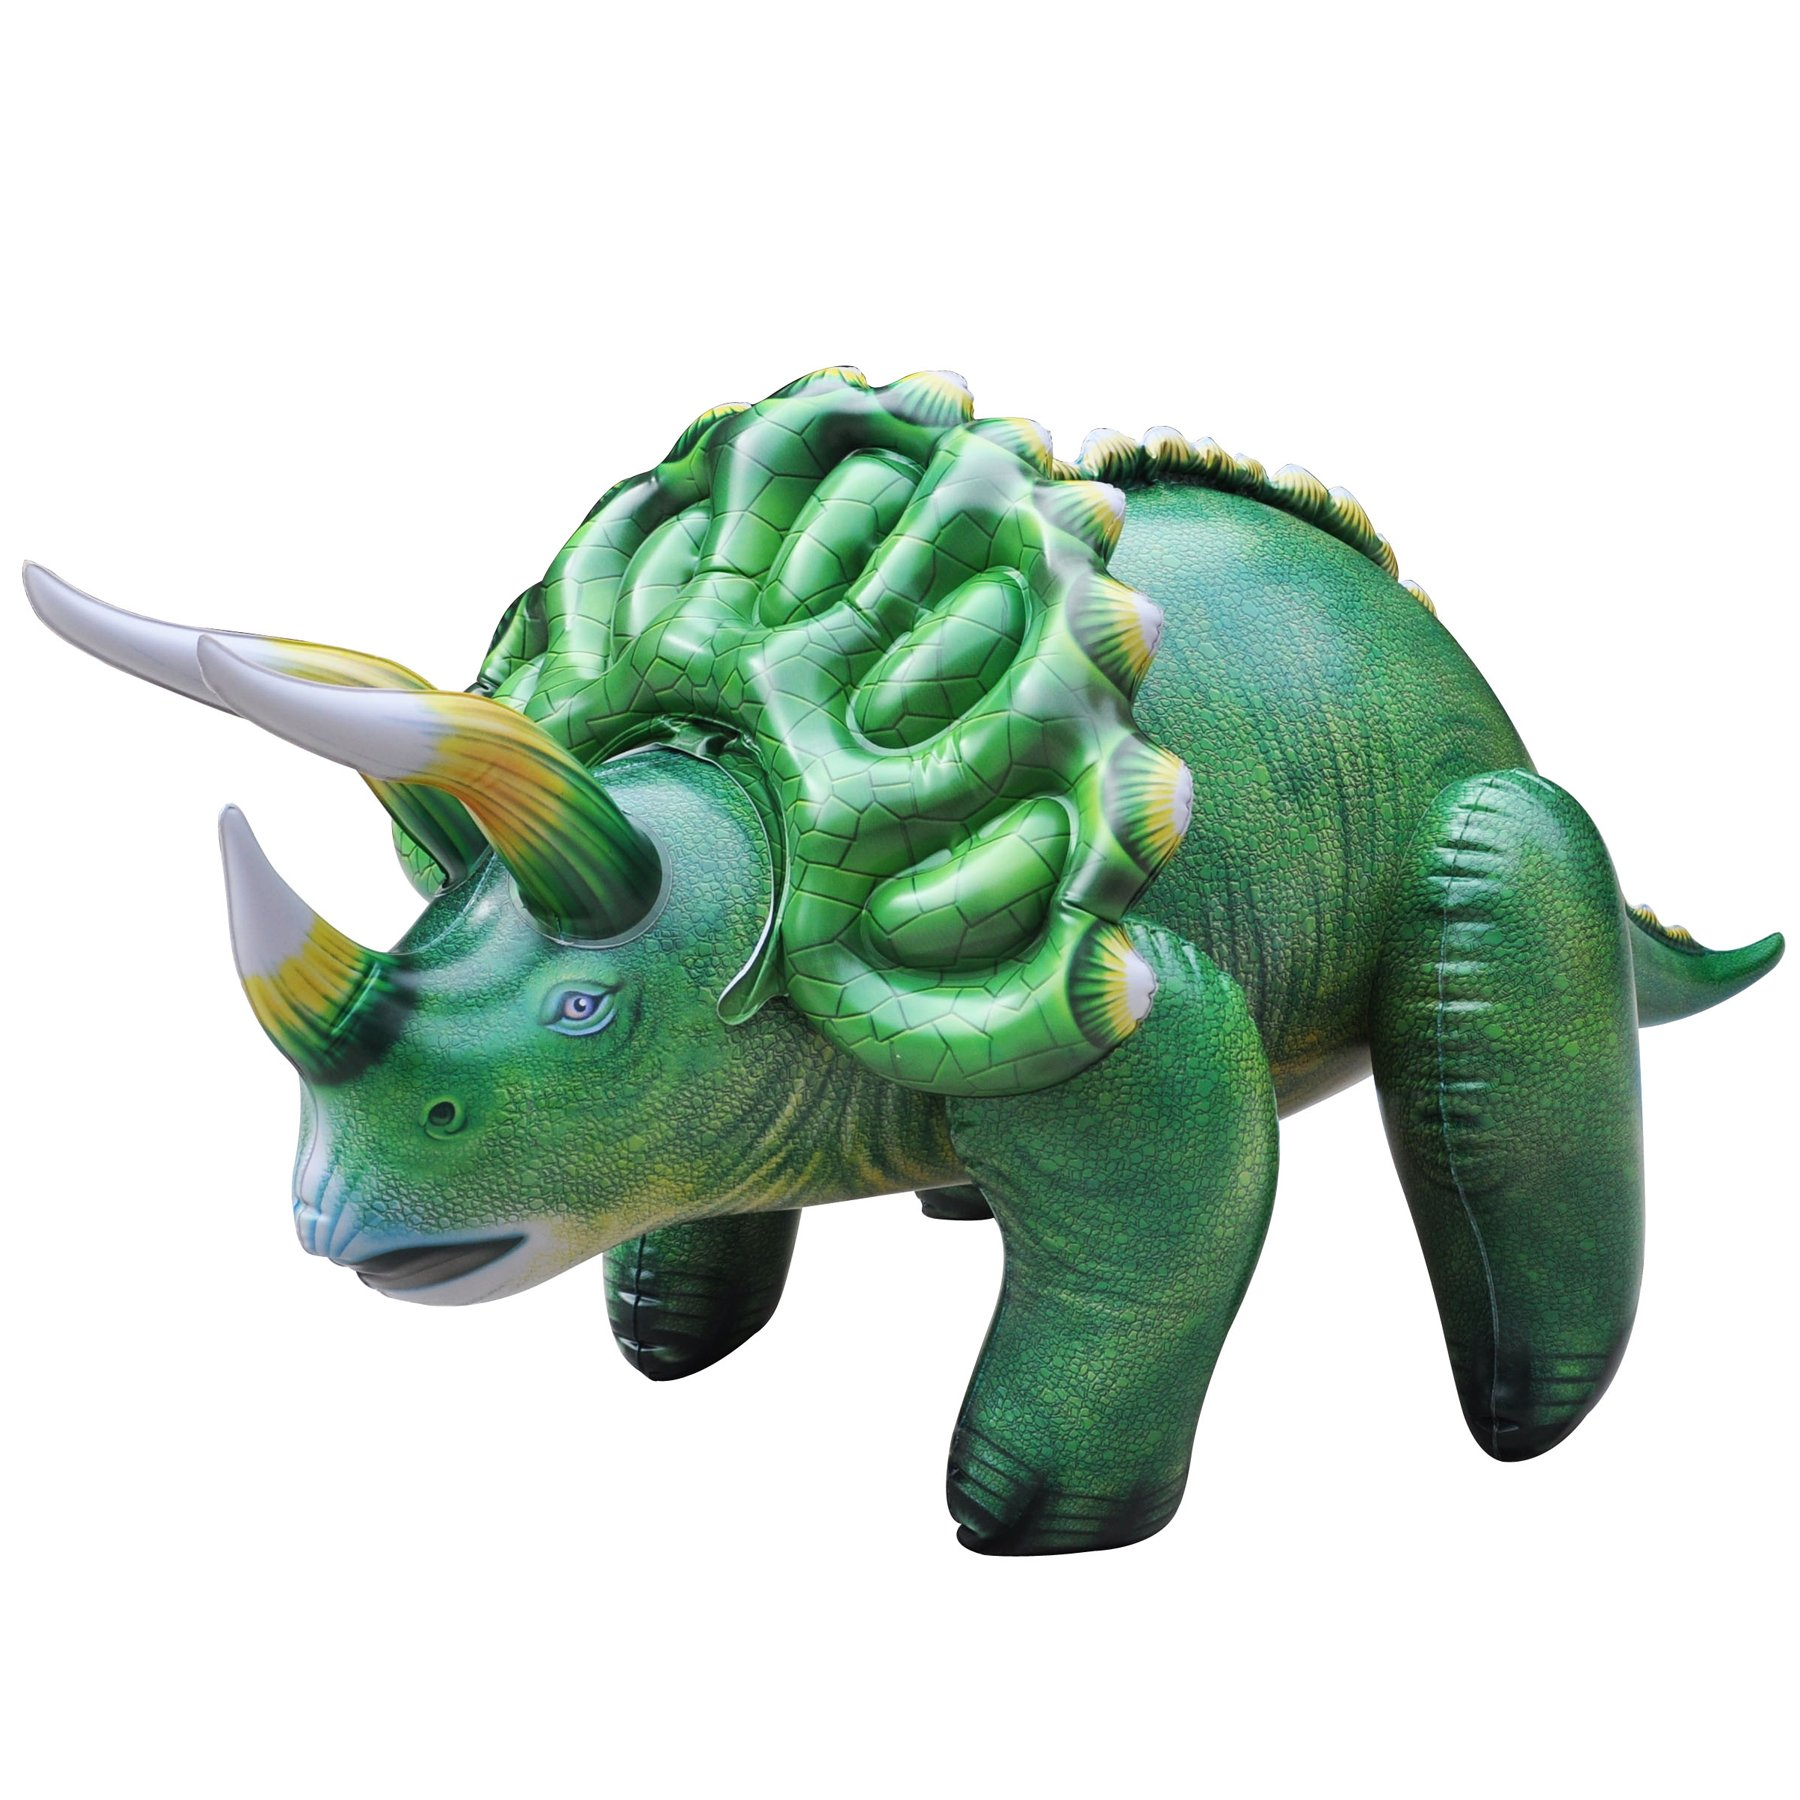 Triceratops Dinosaur Inflatable 43 inch for pool party decoration birthday gift kids and adults DI-TRI4 by Jet Creations by Jet Creations